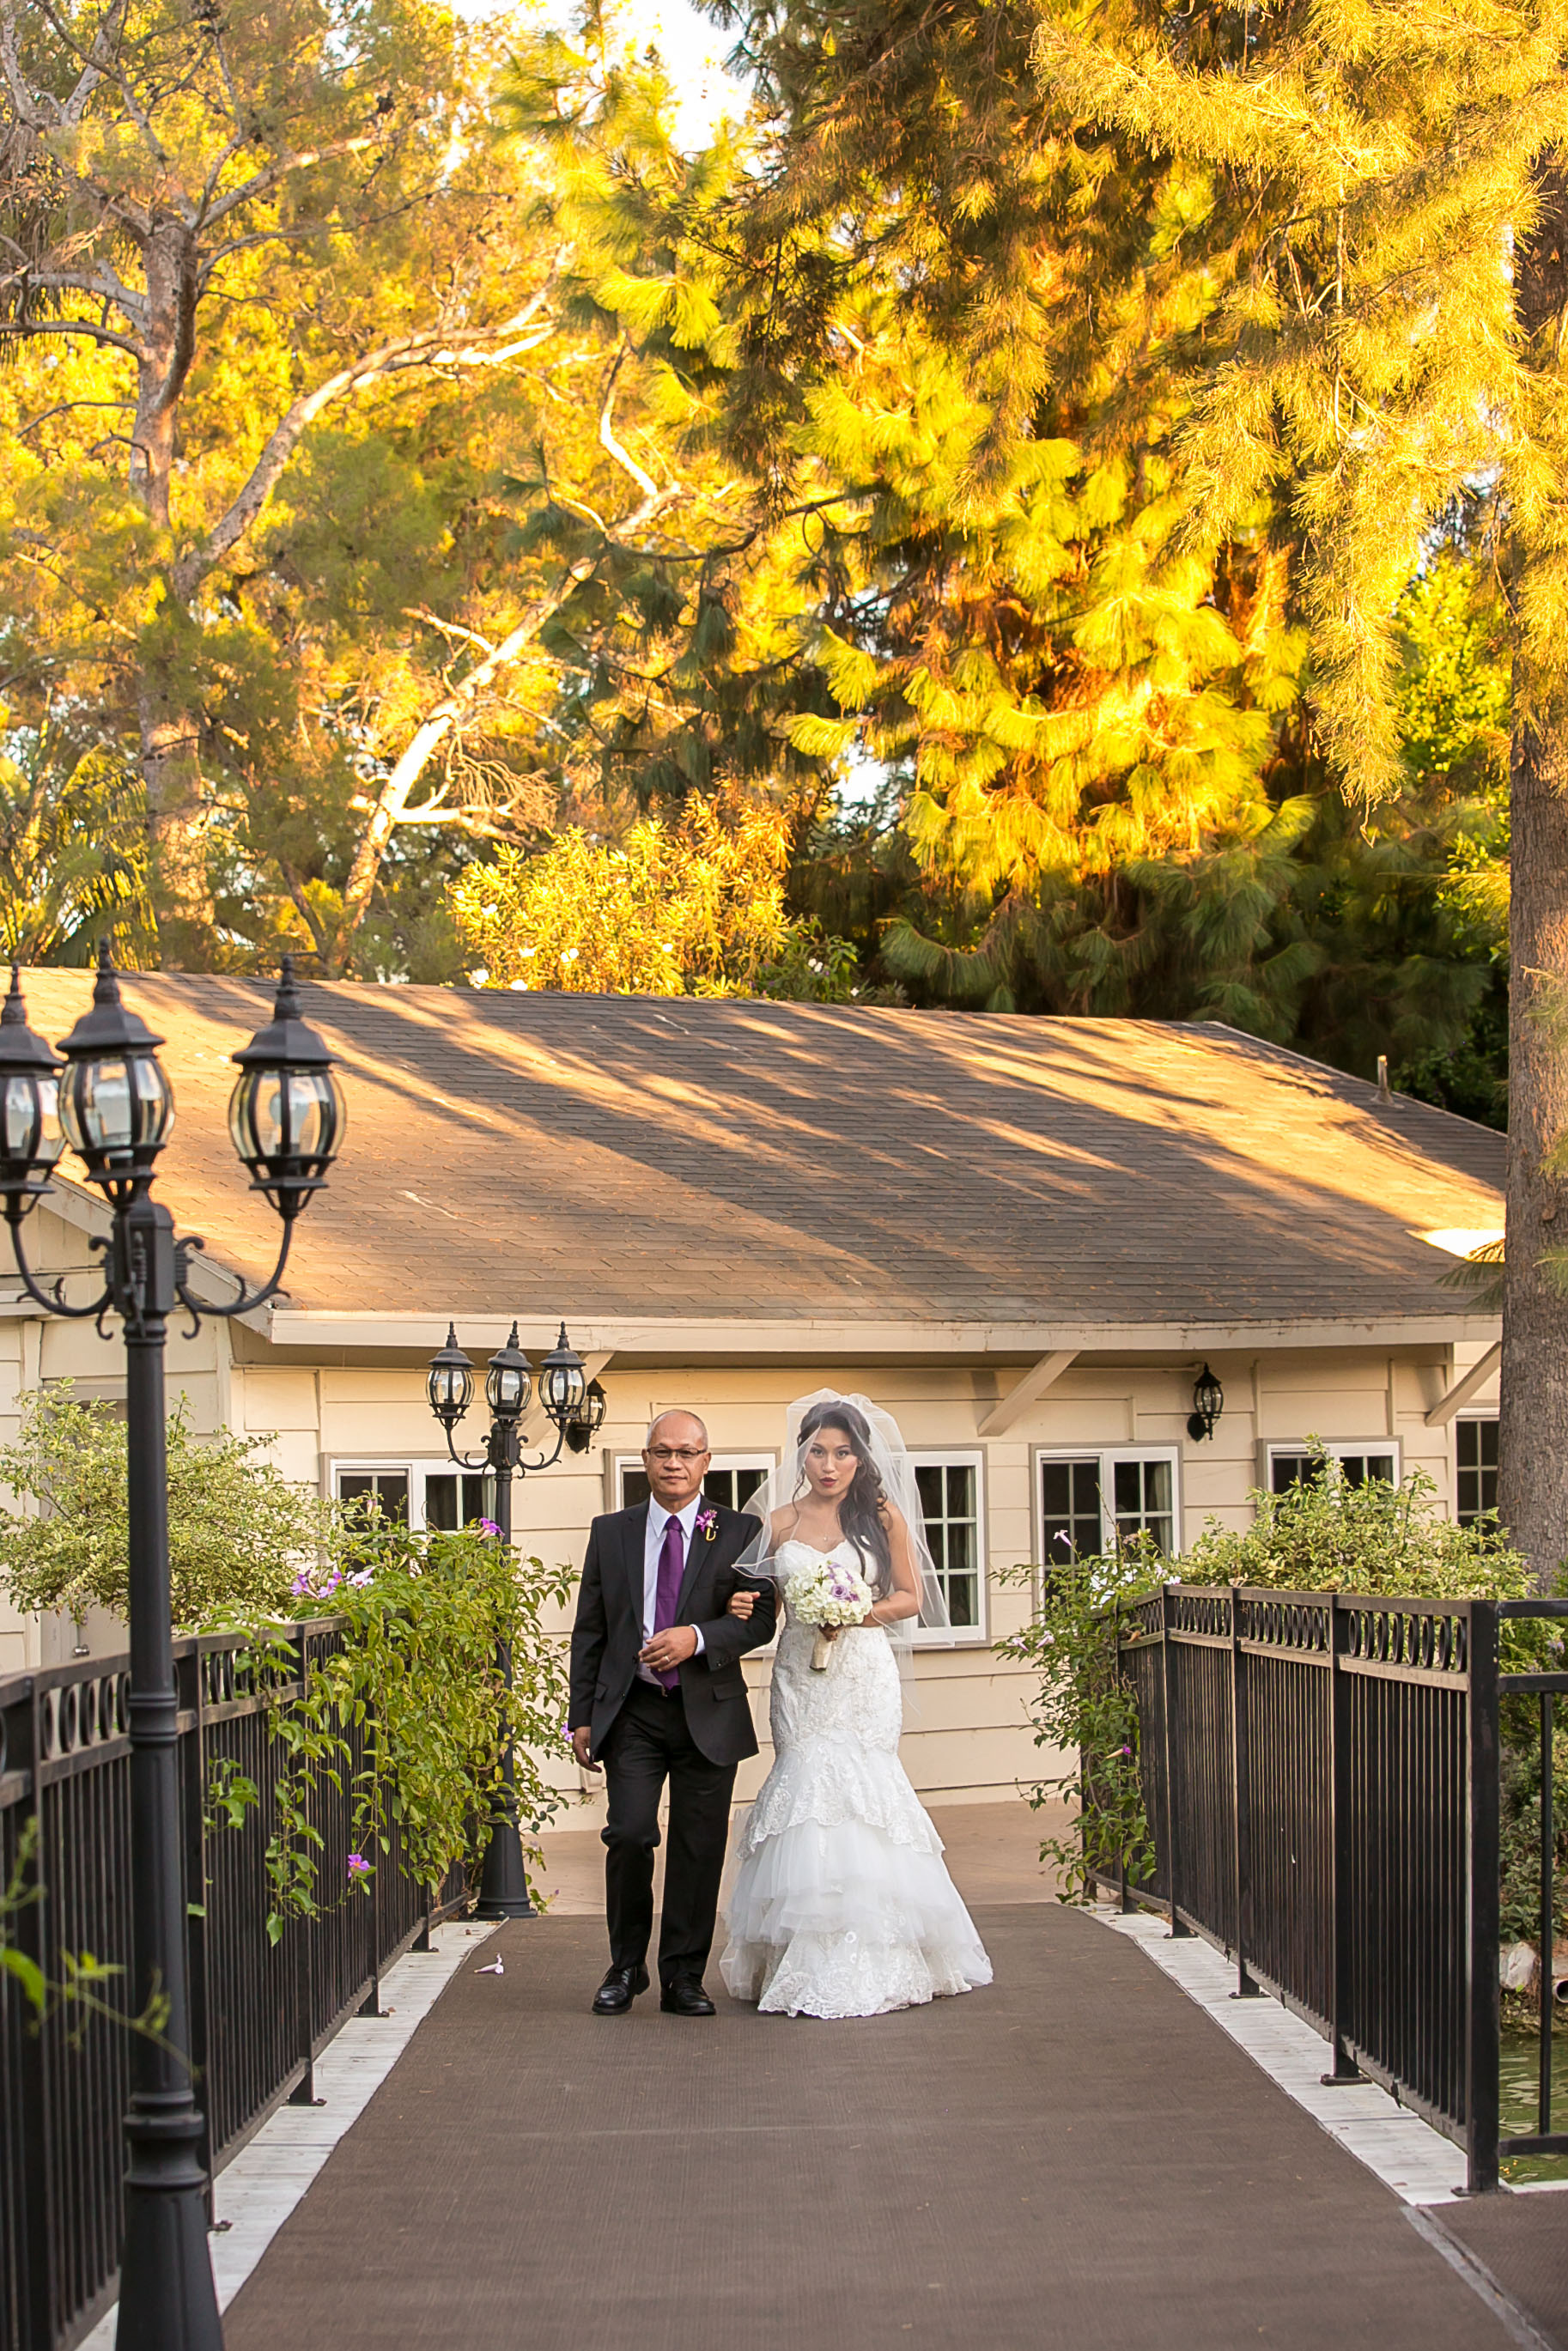 SPORTSMENS LODGE WEDDING LOS ANGELES WEDDING PHOTOGRAPHER CHRIS HOLT PHOTOGRAPHY_019.jpg